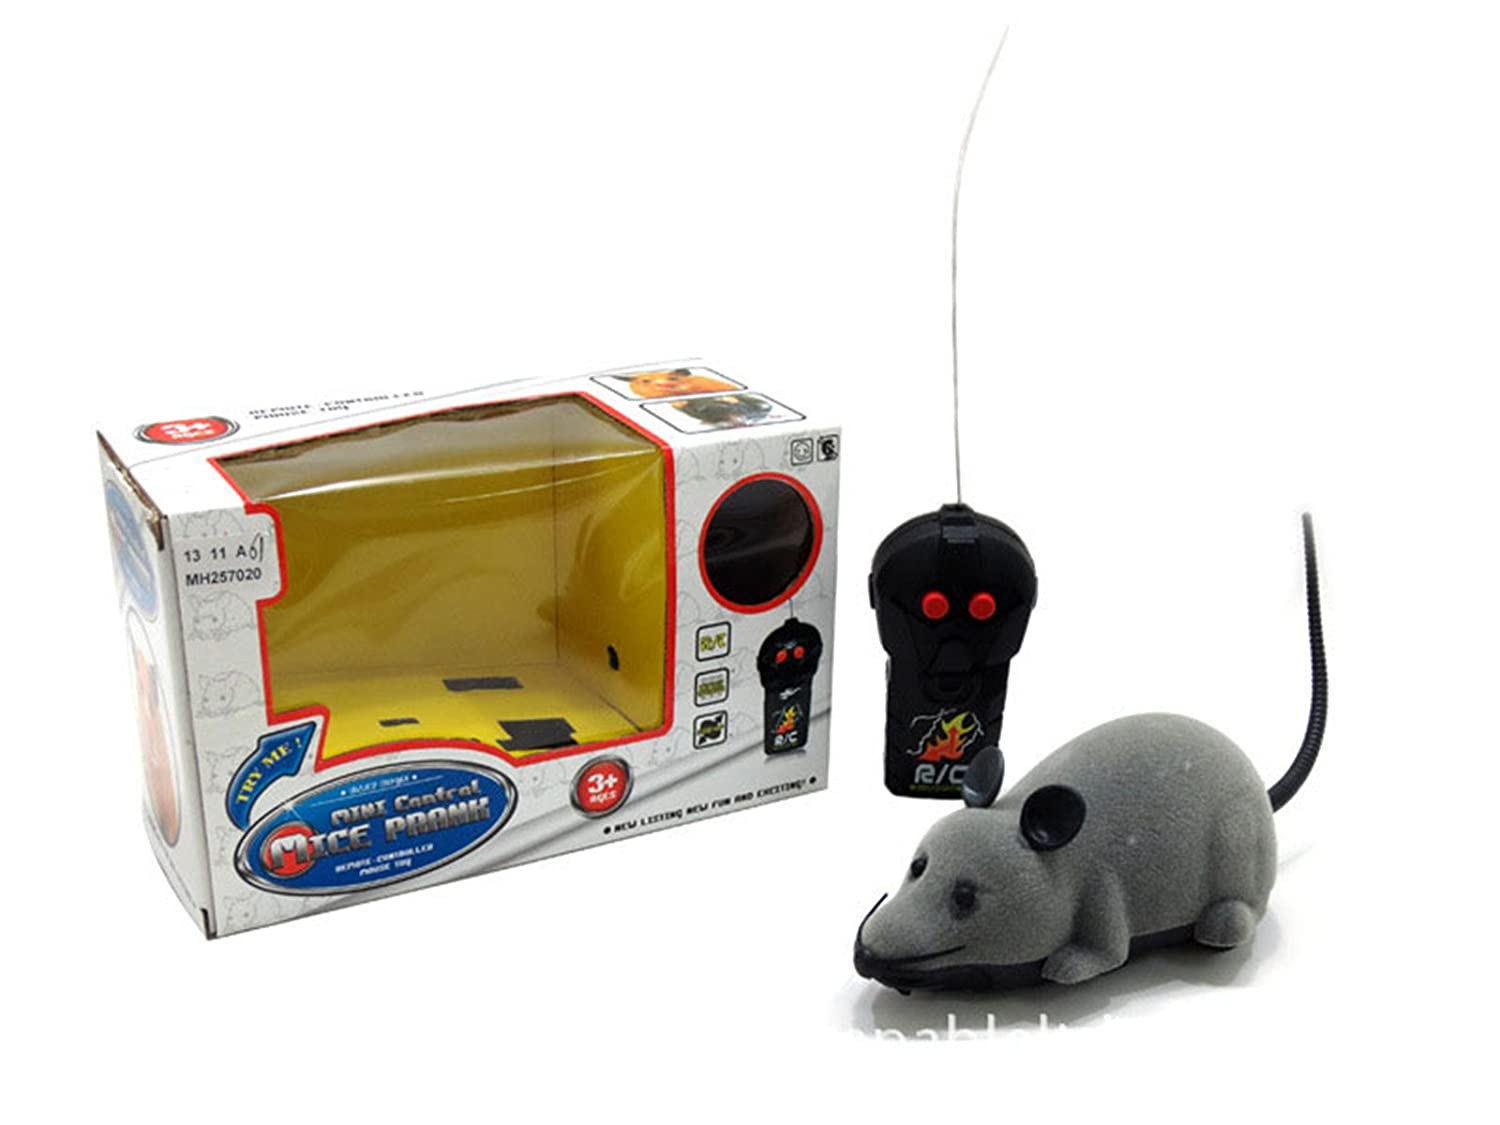 Allytech(TM) RC Mouse Funny Wireless Remote Control Rat Toy For Cats Dogs Pets Kids Novelty Gift Funny (Grey)